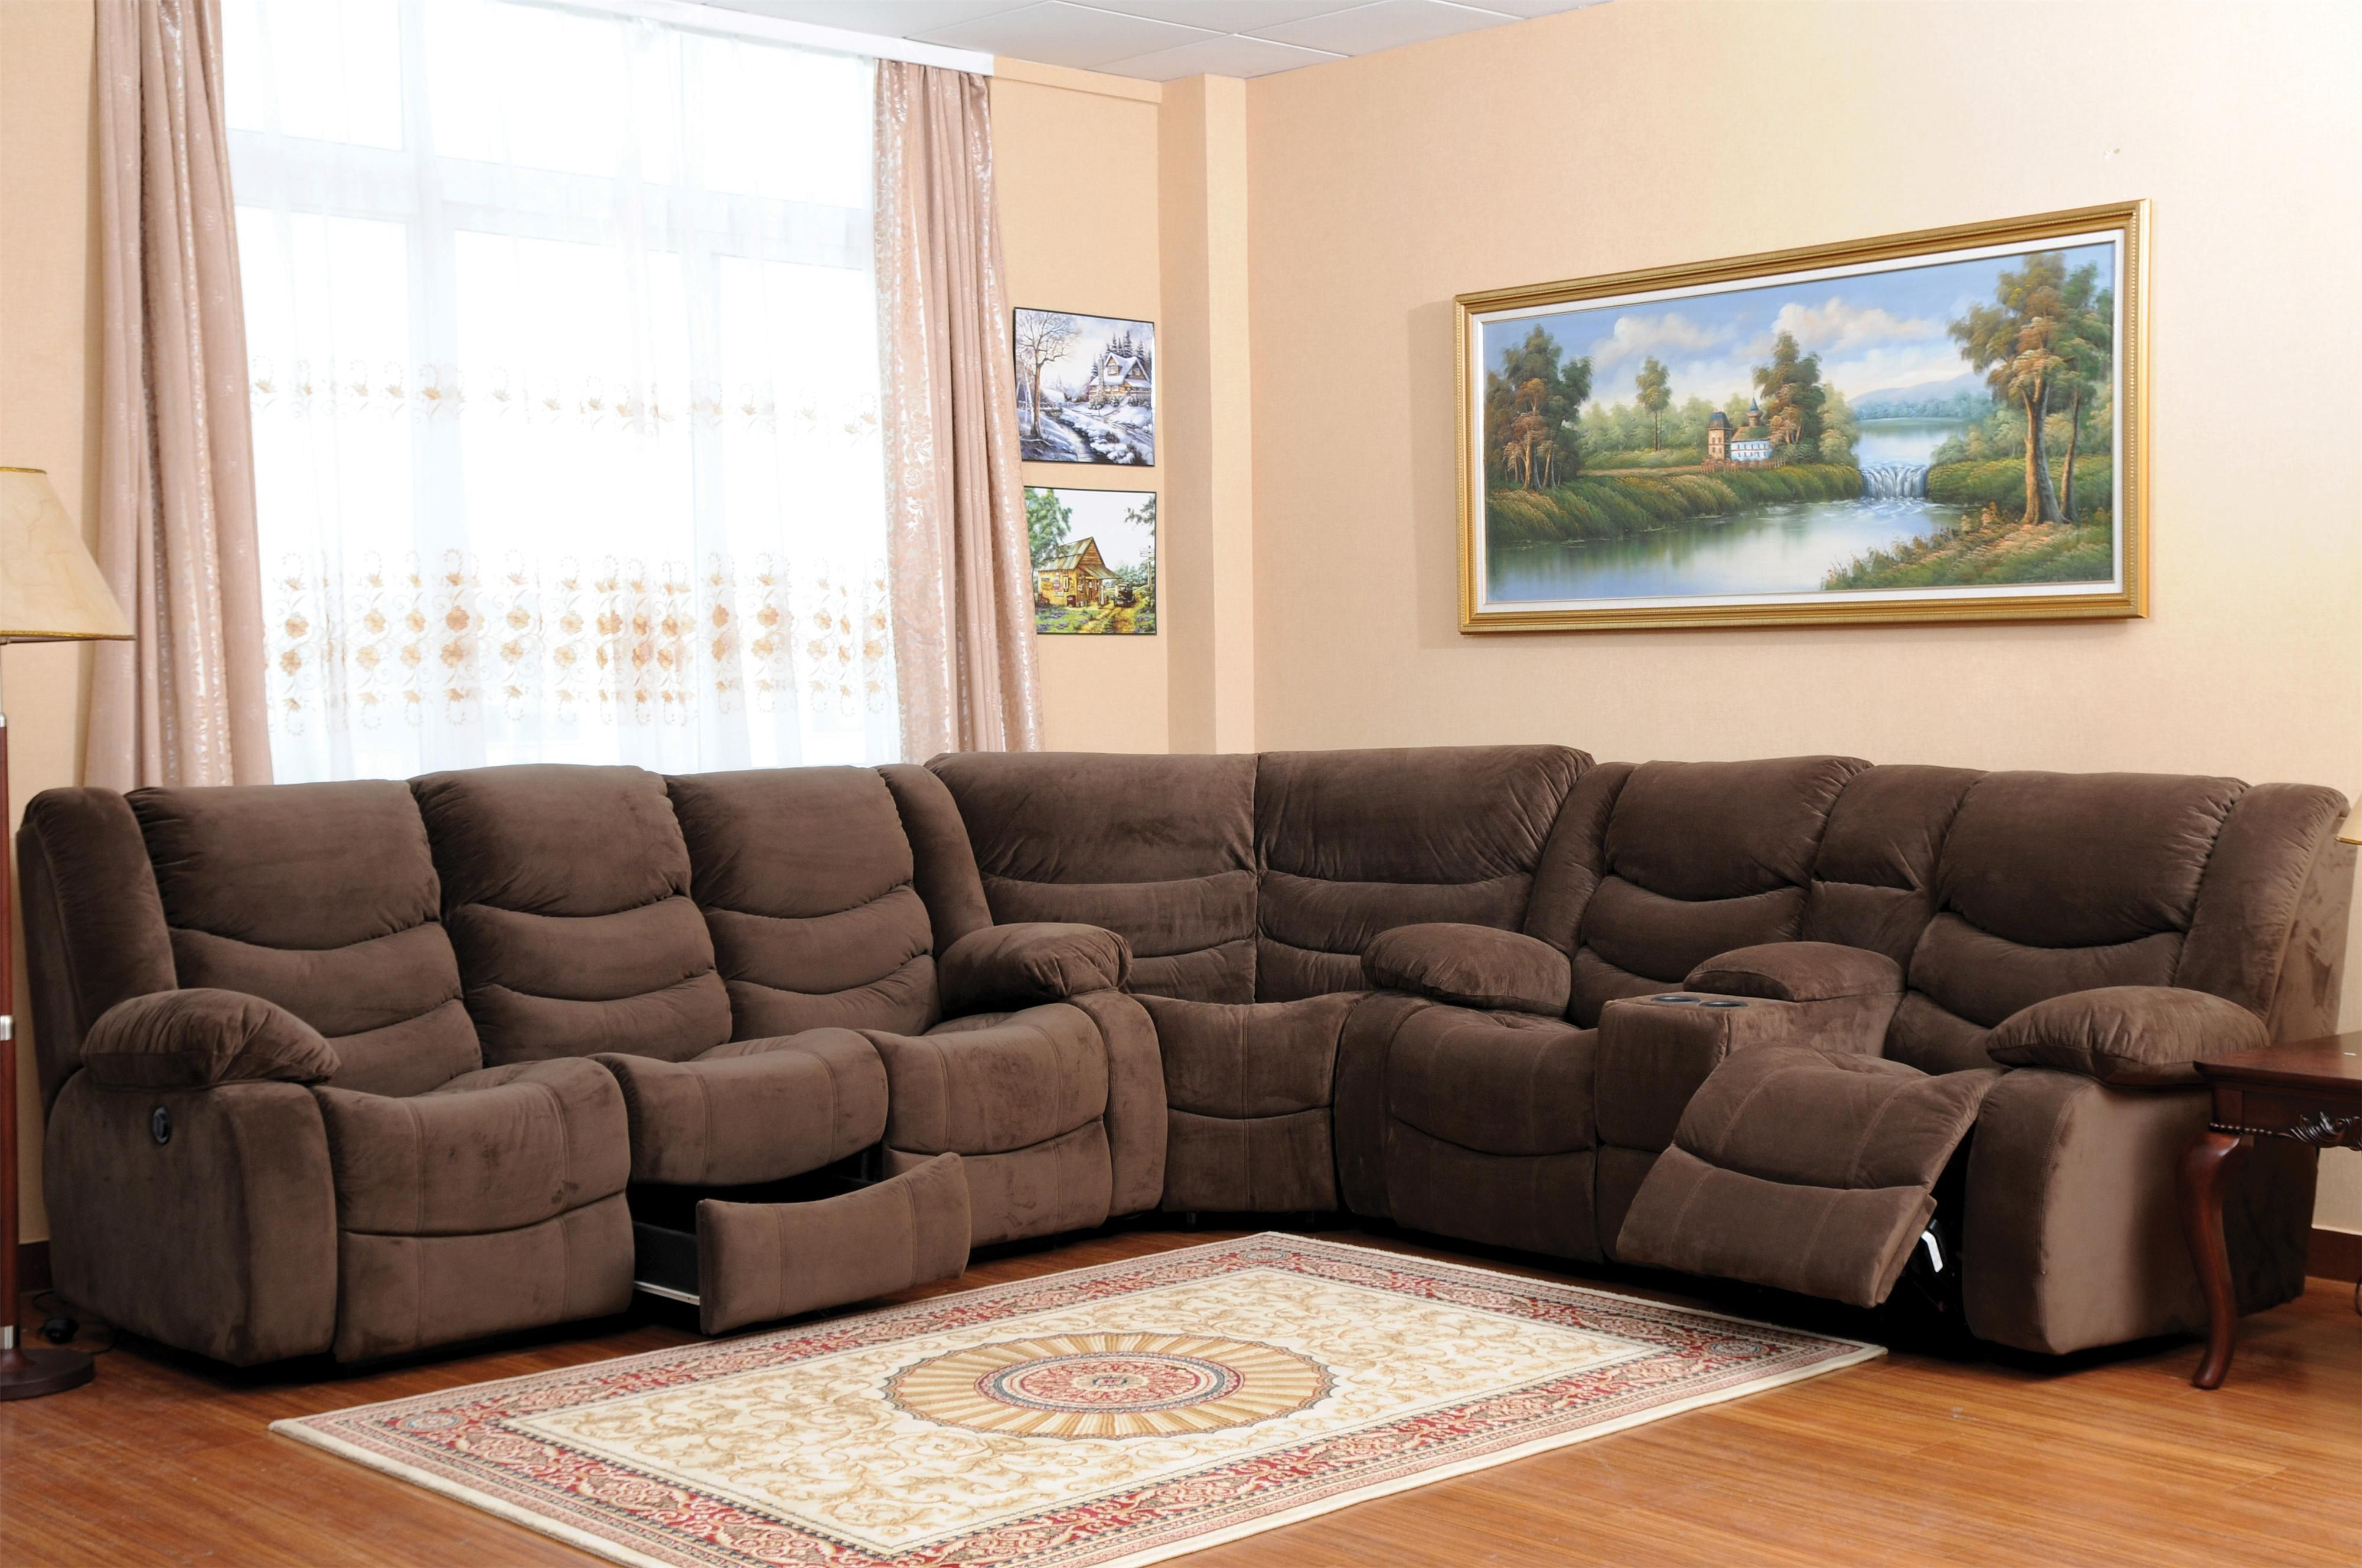 Lovely Reclining Sectional Sofa With Storage And Console East Smithfield, Lock  Haven, Mansfield, Milton